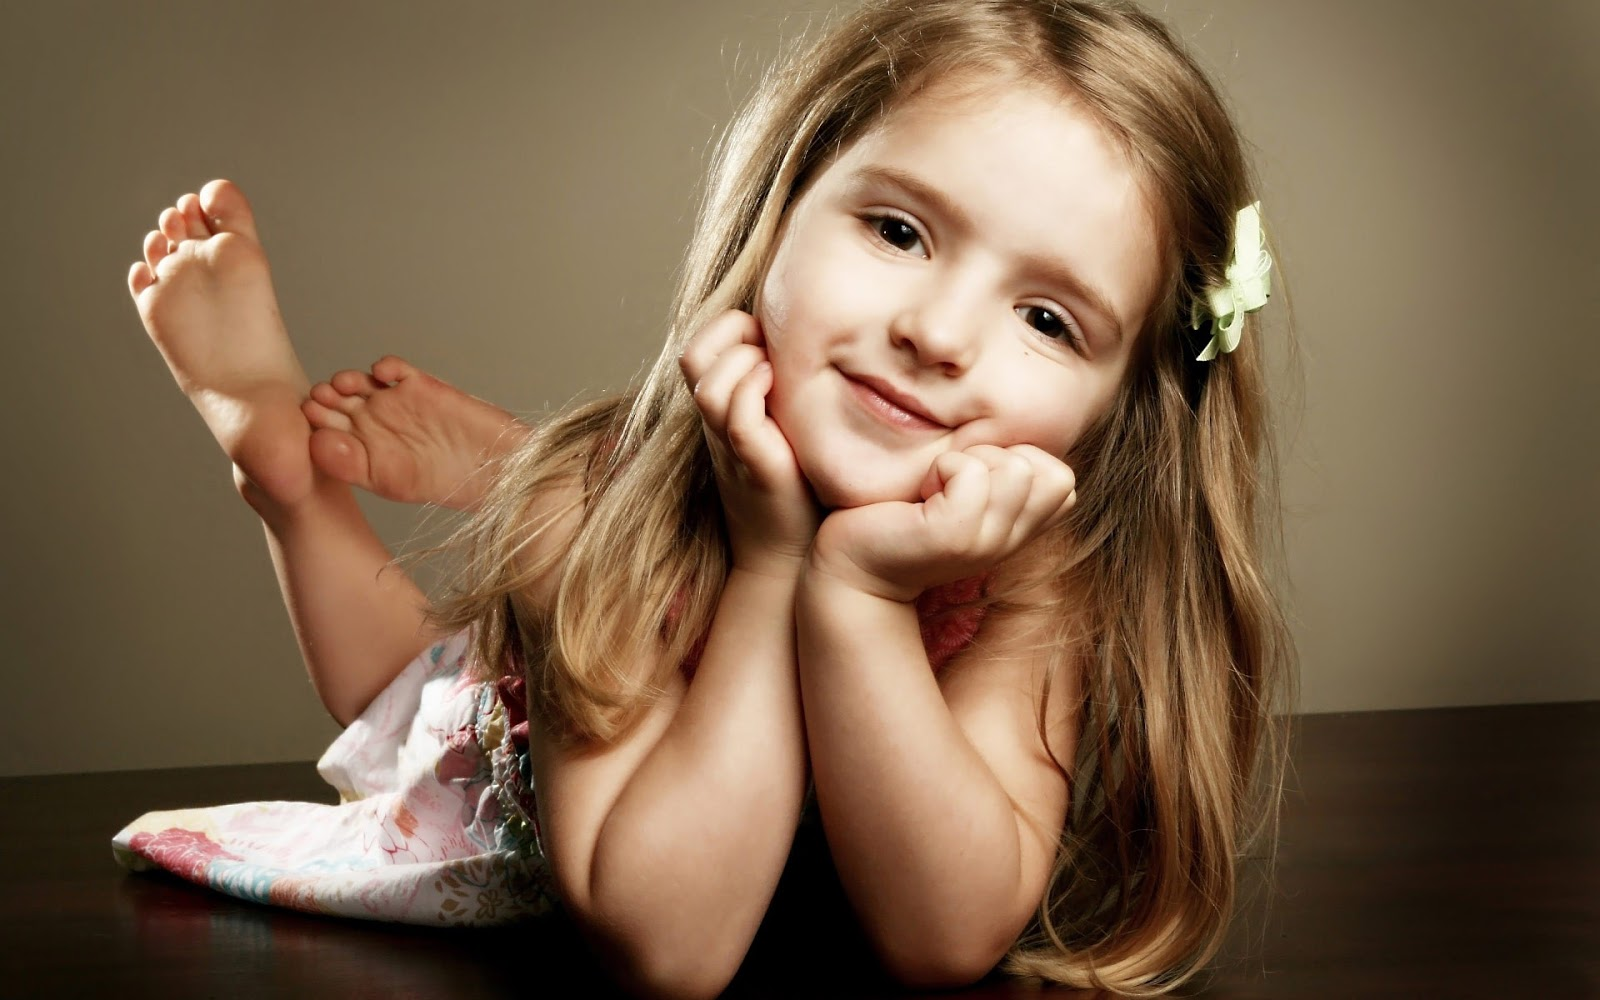 Cute Kids Hd Wallpapers Hd Wallpapers